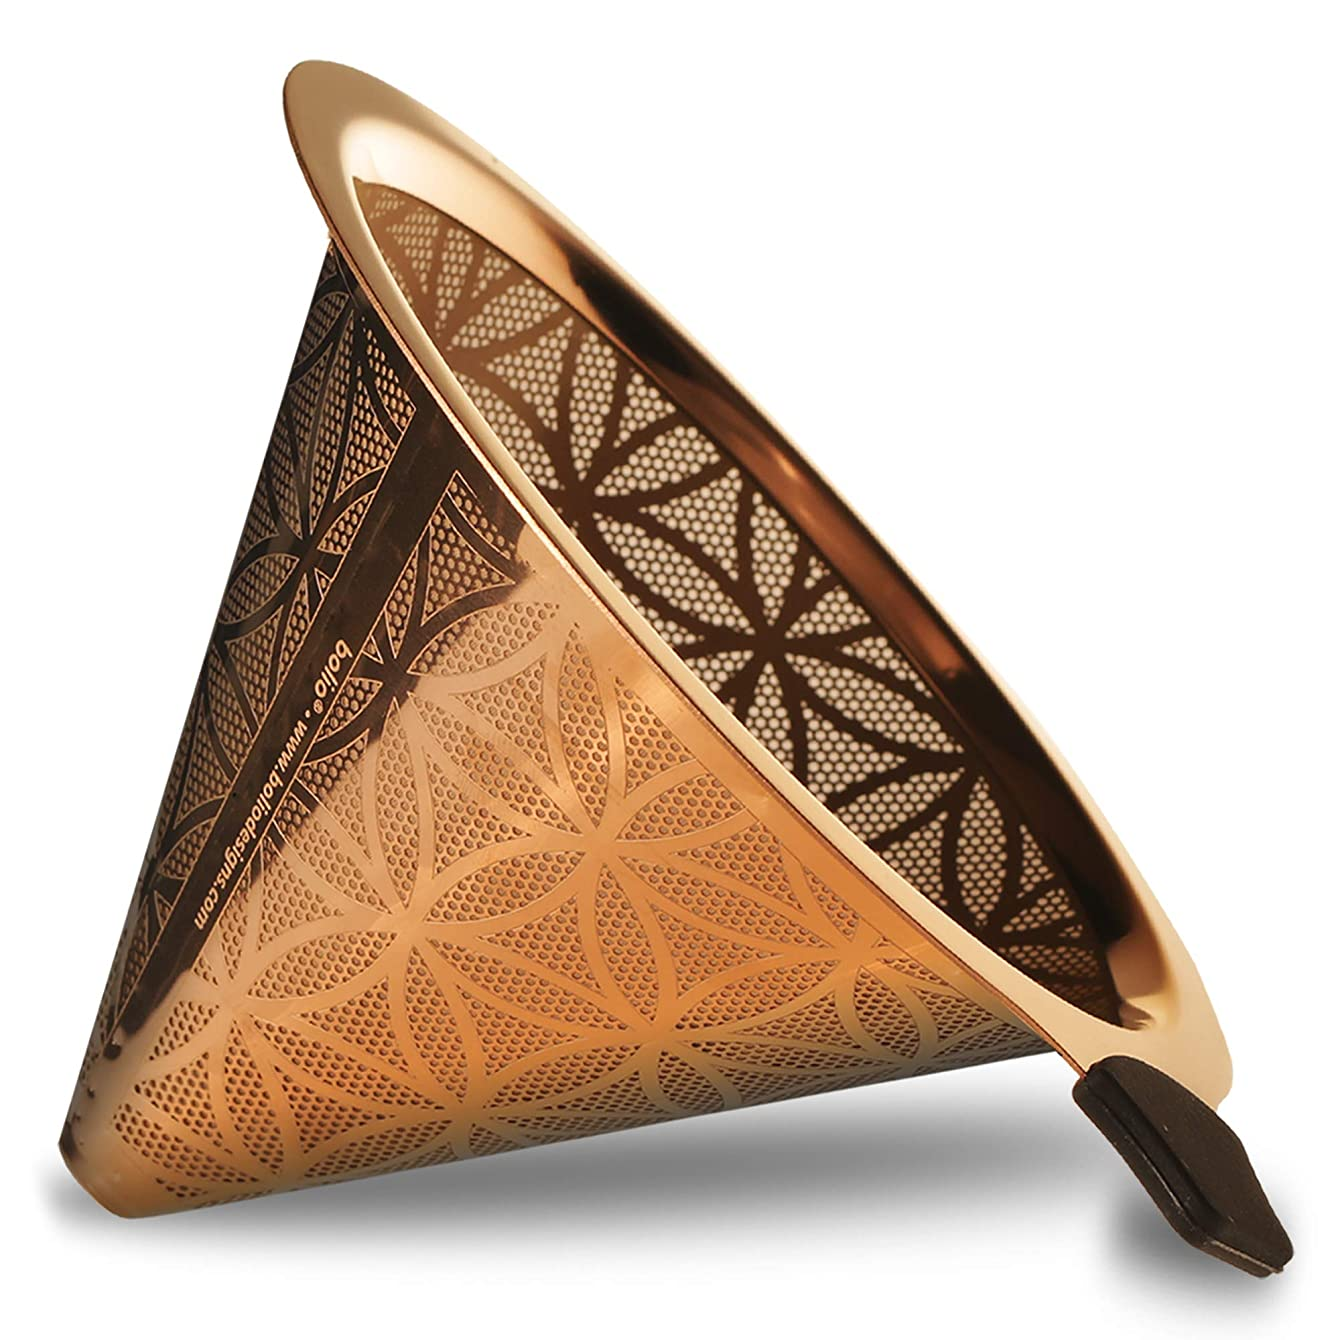 Titanium Coated Steel Reusable Cone Coffee Filter With Elegant Flower Of Life Pattern (No. 4)